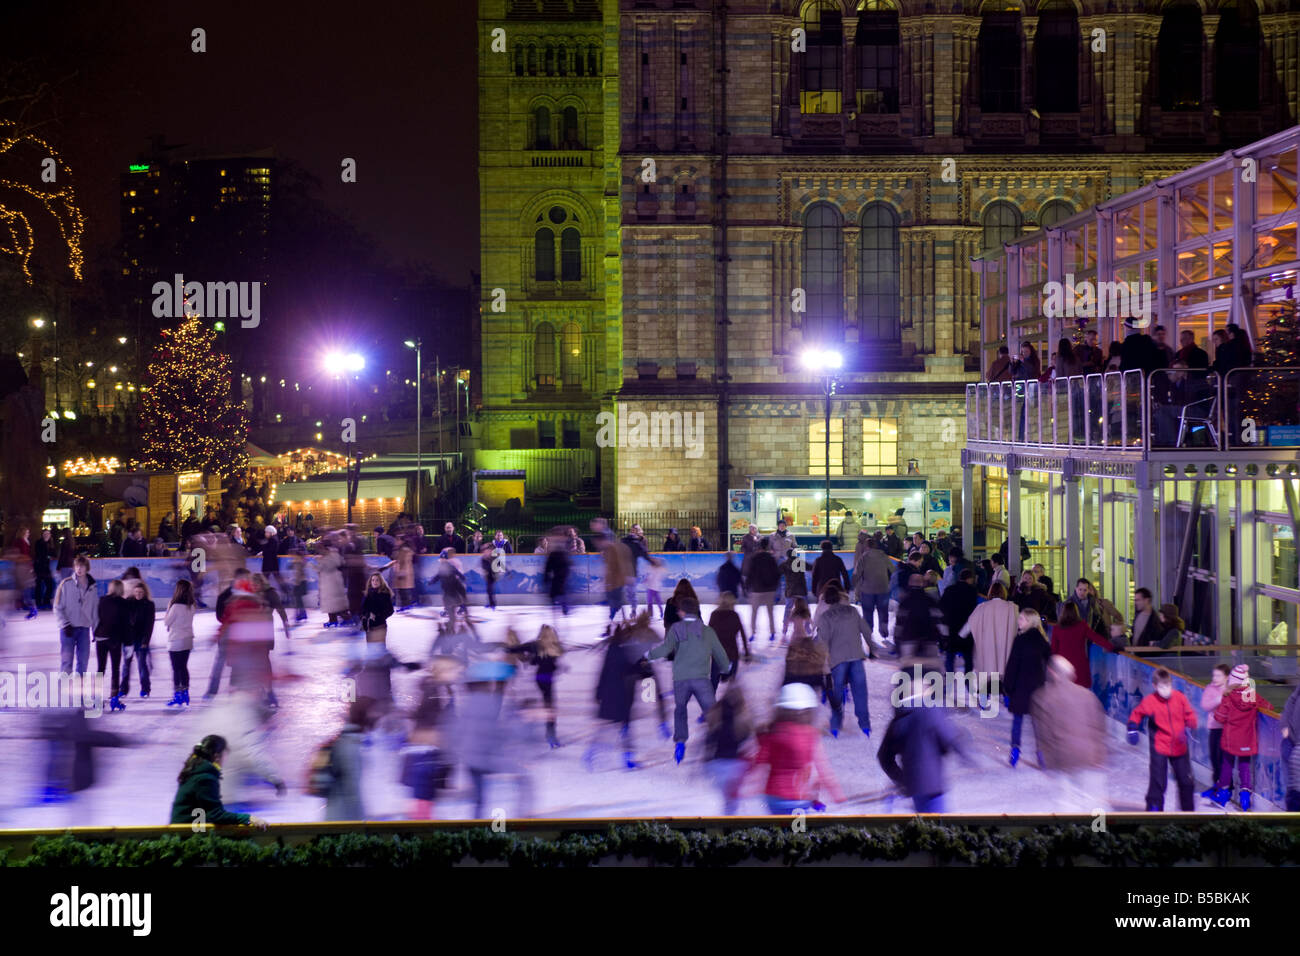 Ice skating outside the Natural History Museum, London, England, Europe - Stock Image